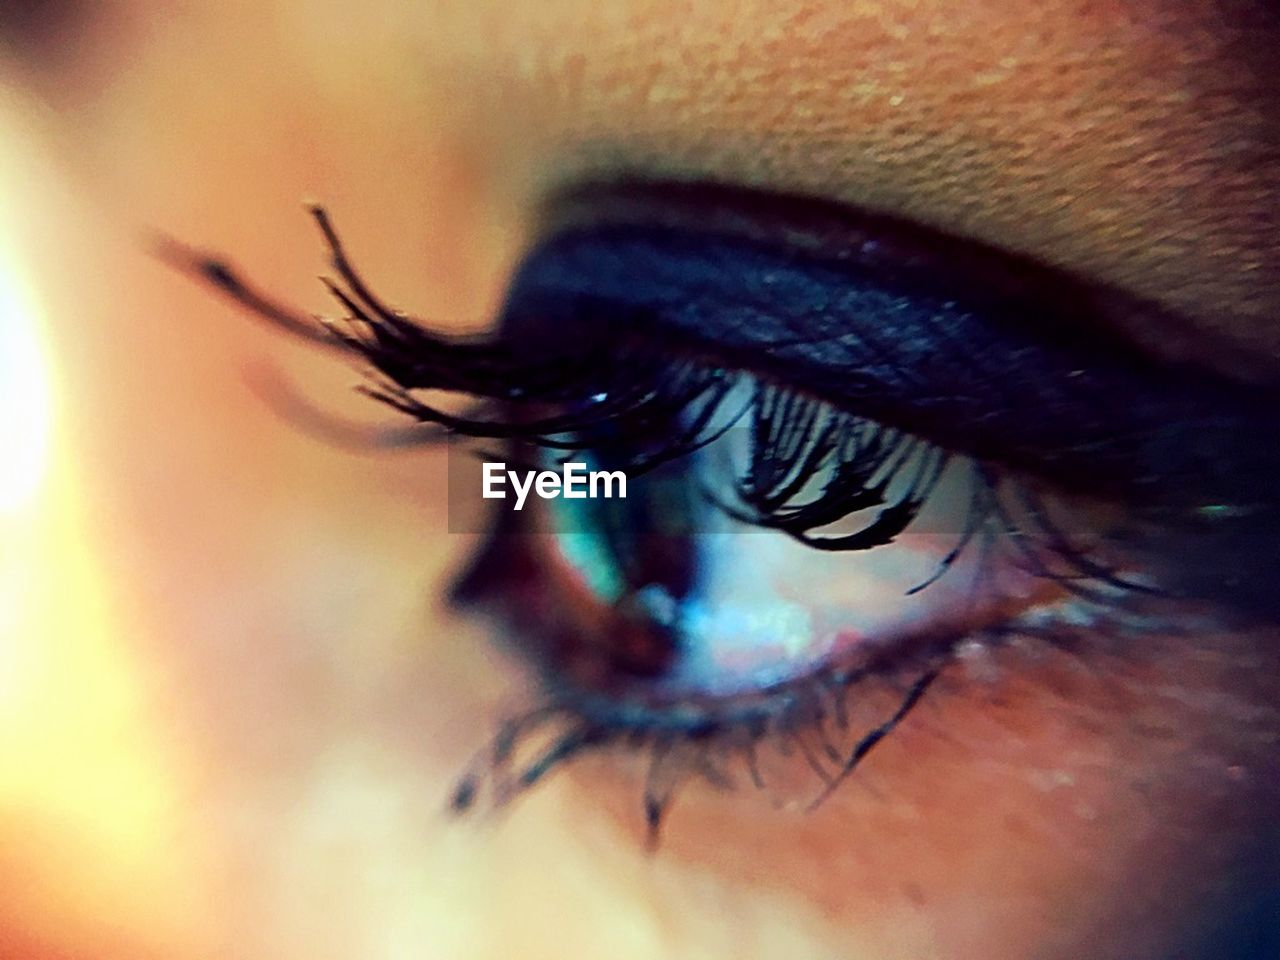 human eye, eyelash, human body part, eyesight, real people, sensory perception, close-up, one person, macro, human skin, eyeball, iris - eye, eyebrow, beautiful woman, women, outdoors, day, people